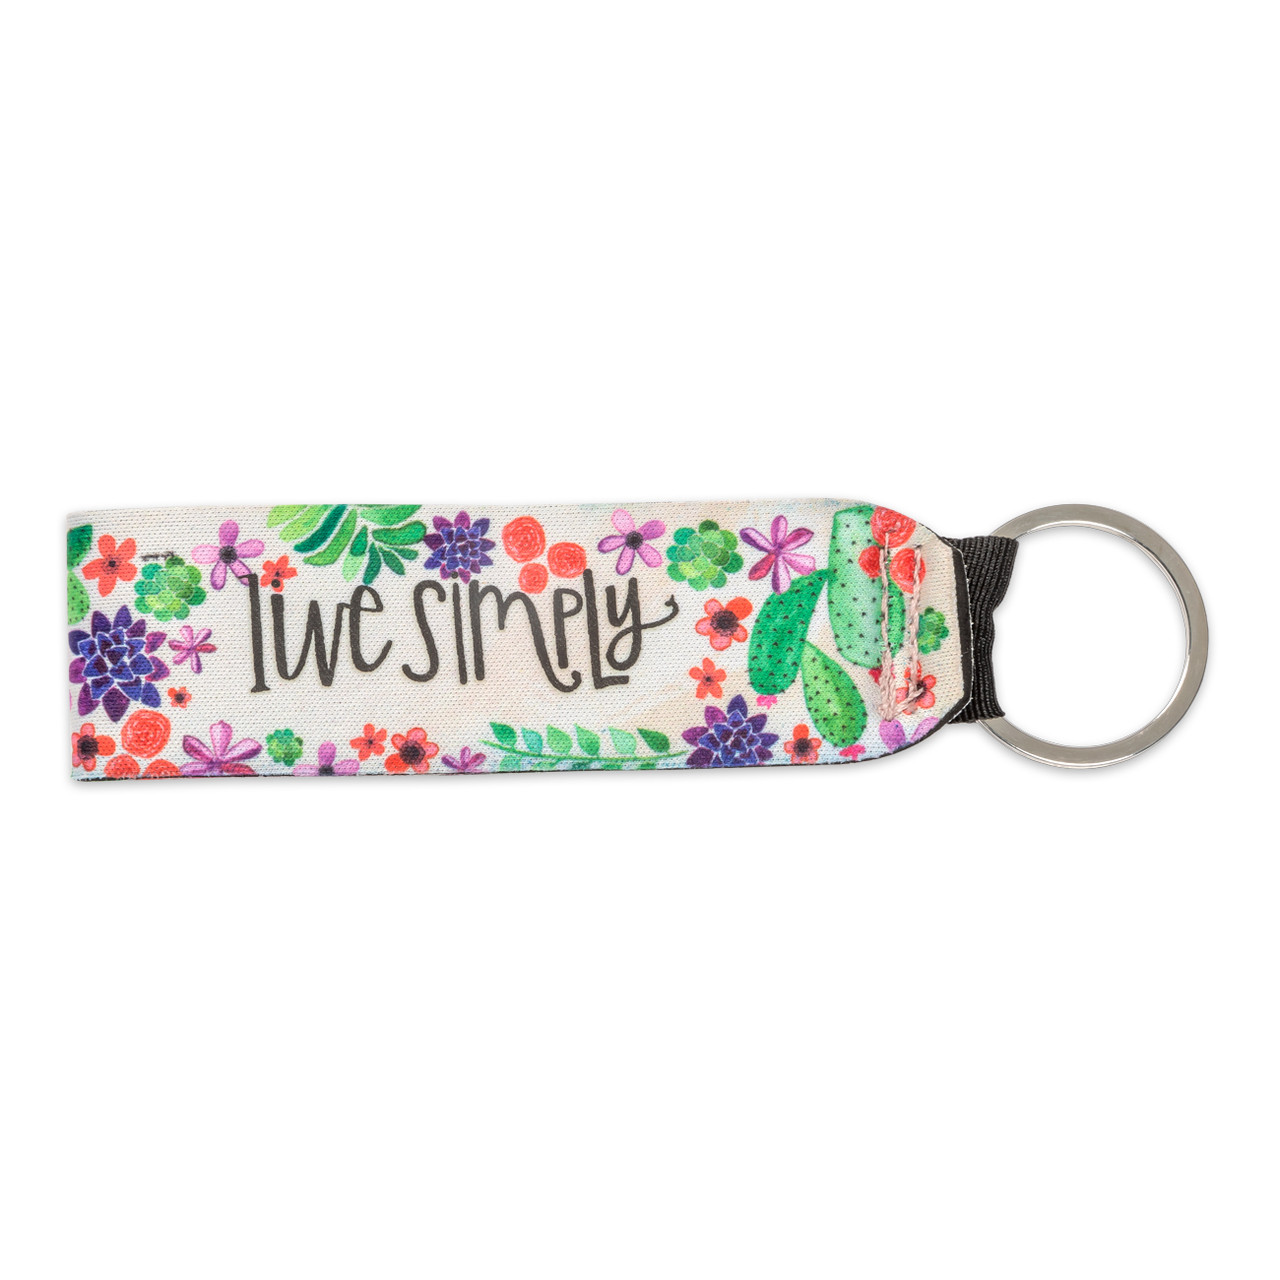 live simply keychain gift inspirational